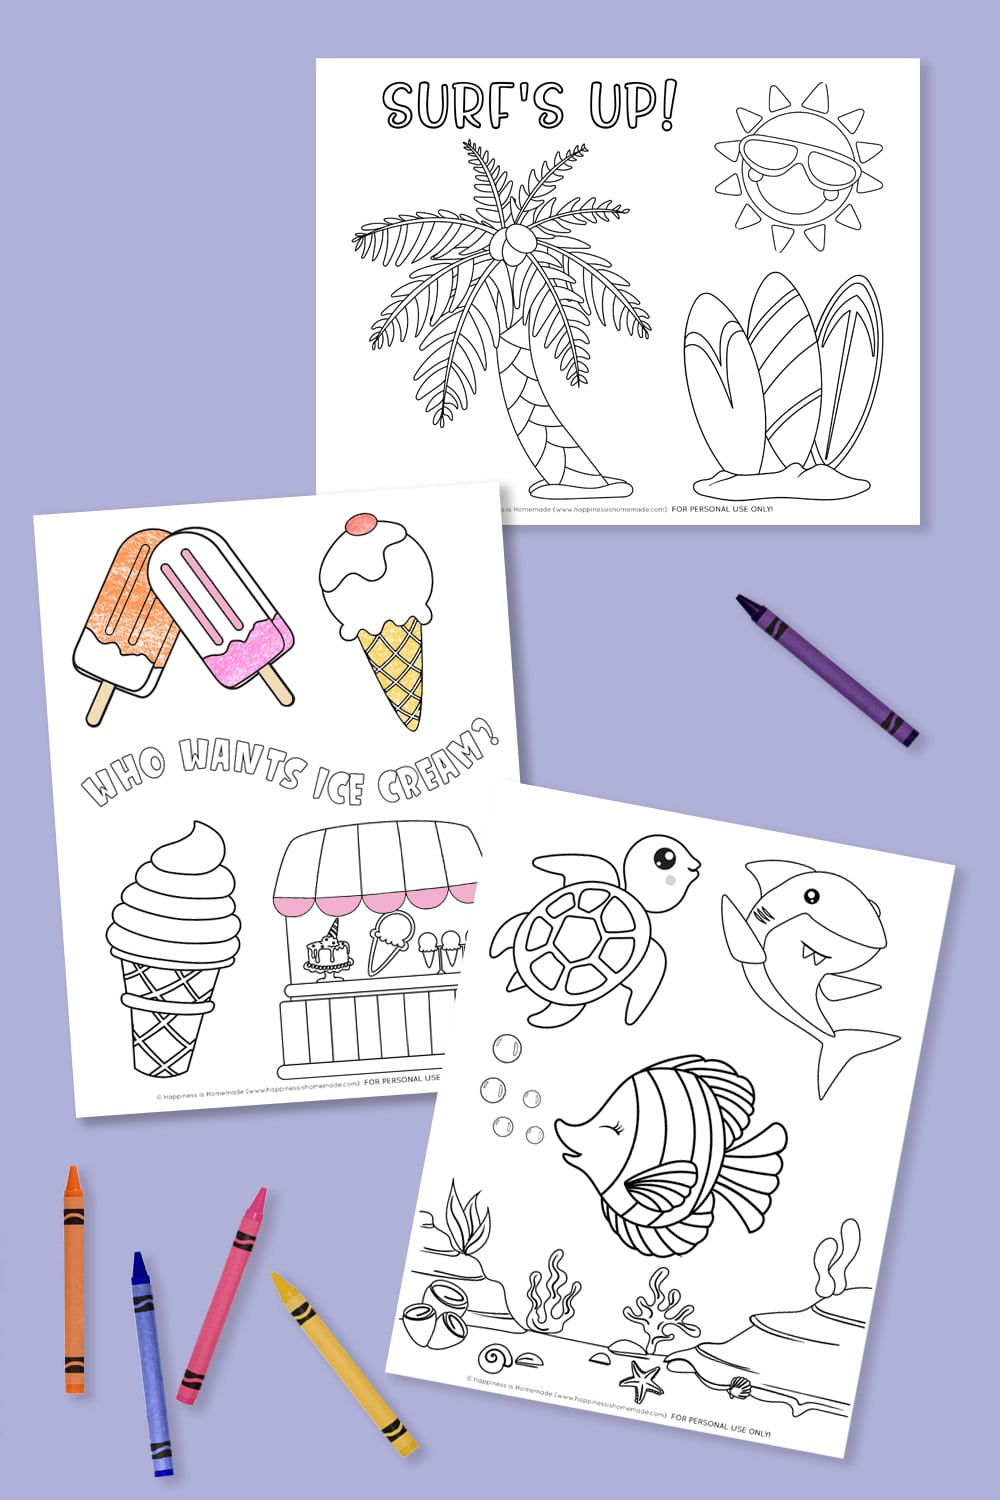 Three summer coloring pages on a lavender background with crayons